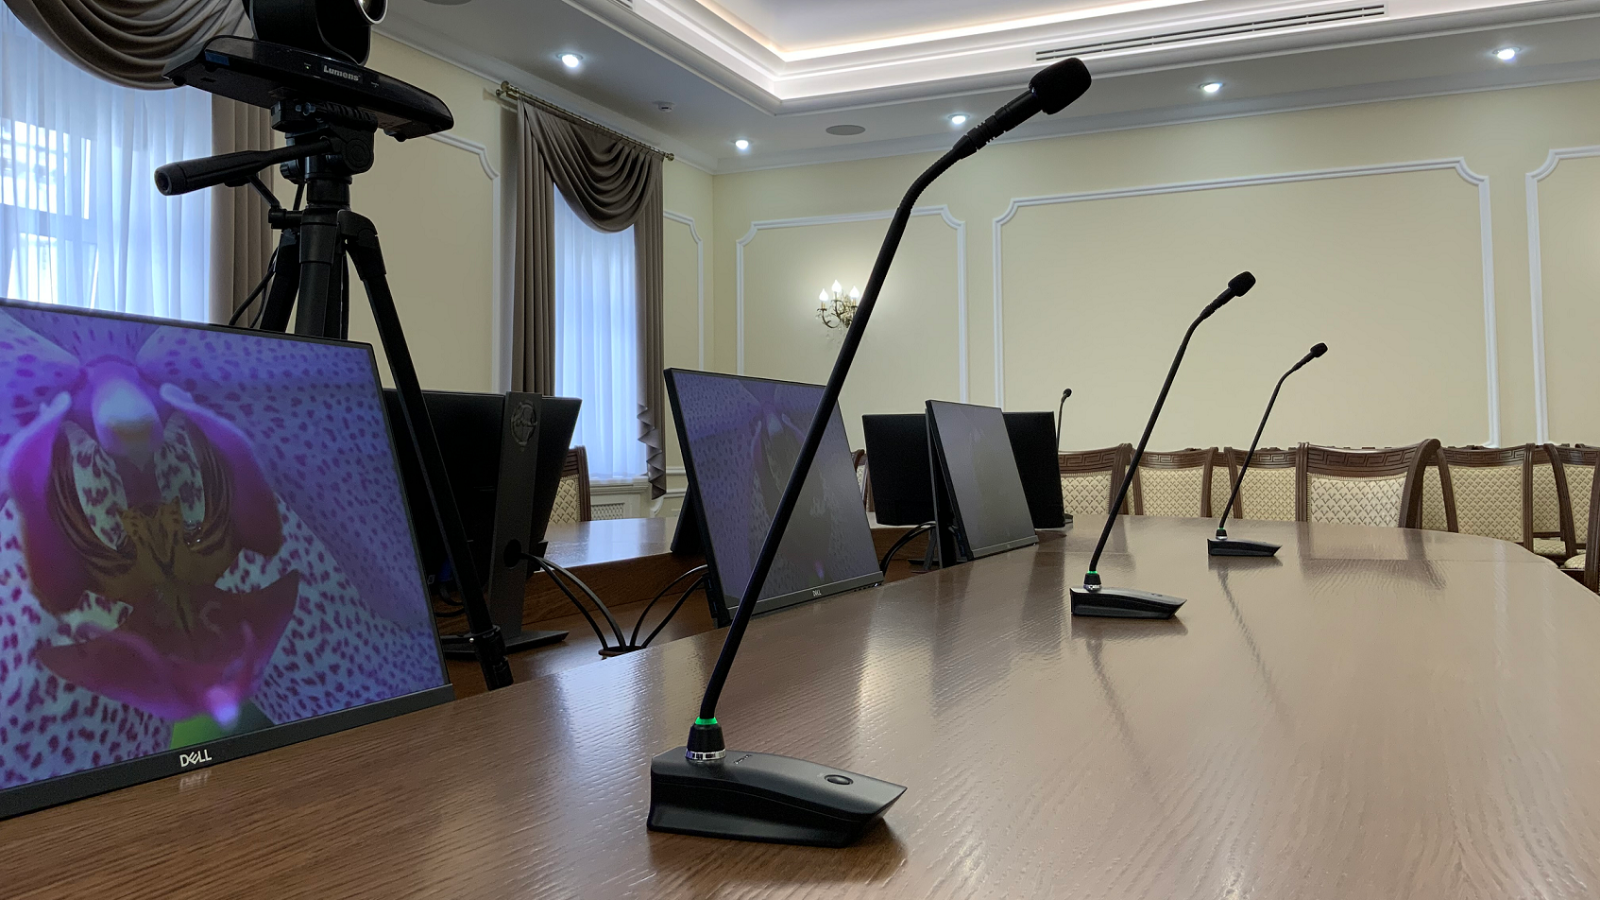 Shure provides audio solutions for the National Situation Centre in Russia